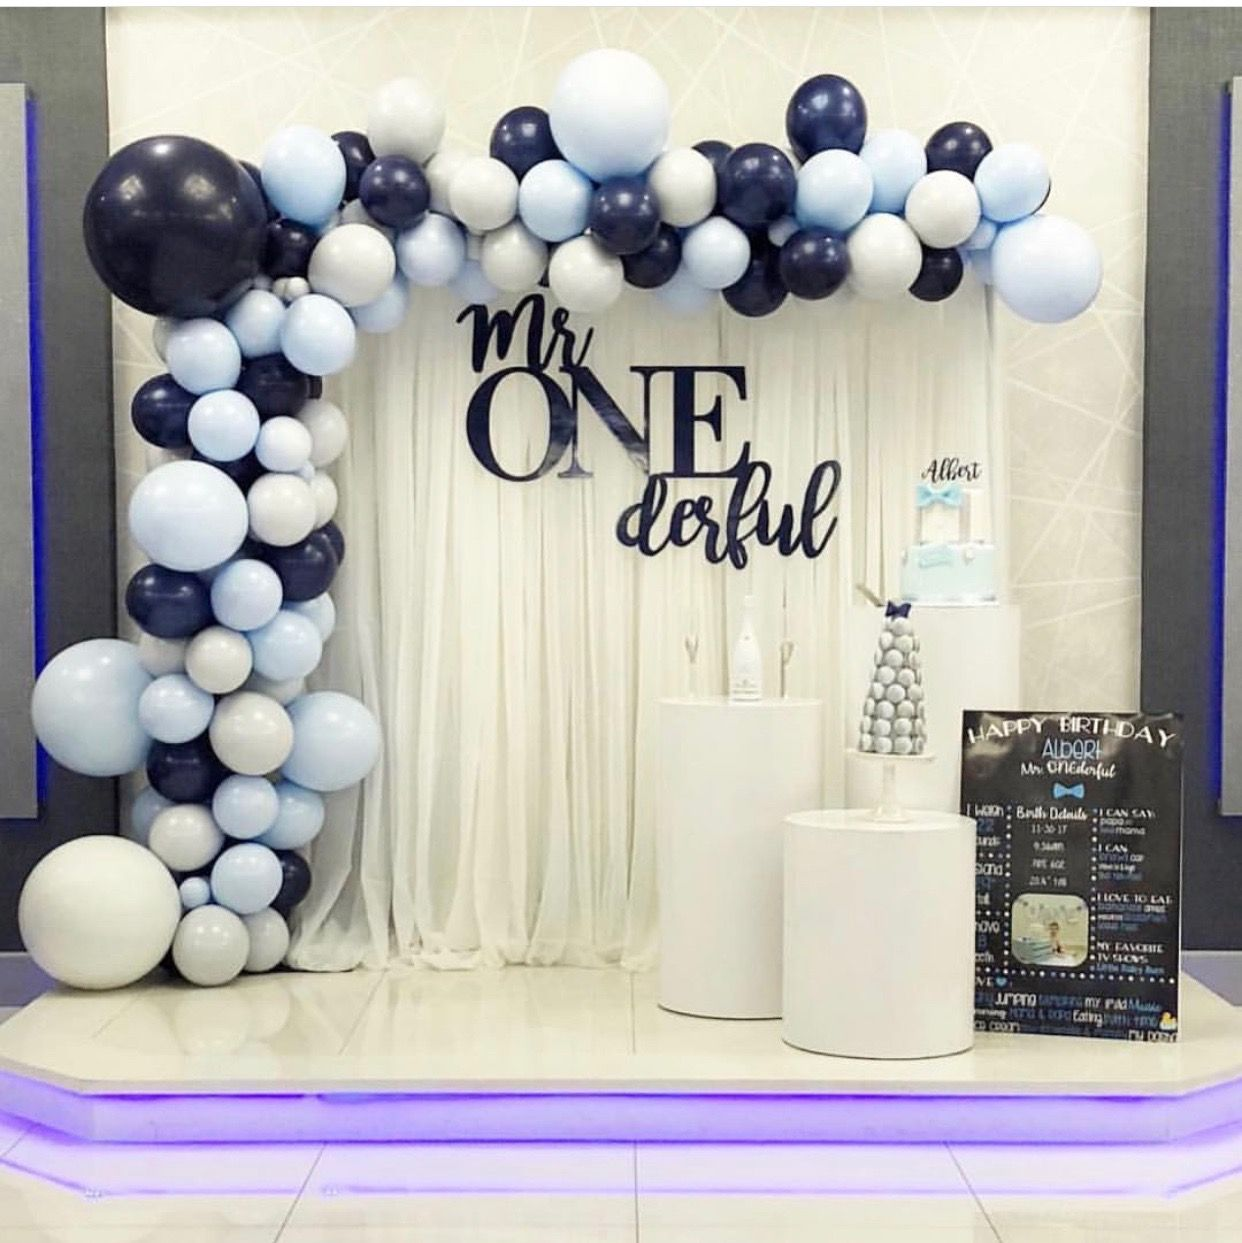 Pin by D on Events/Celebrations/Entertaining (With images